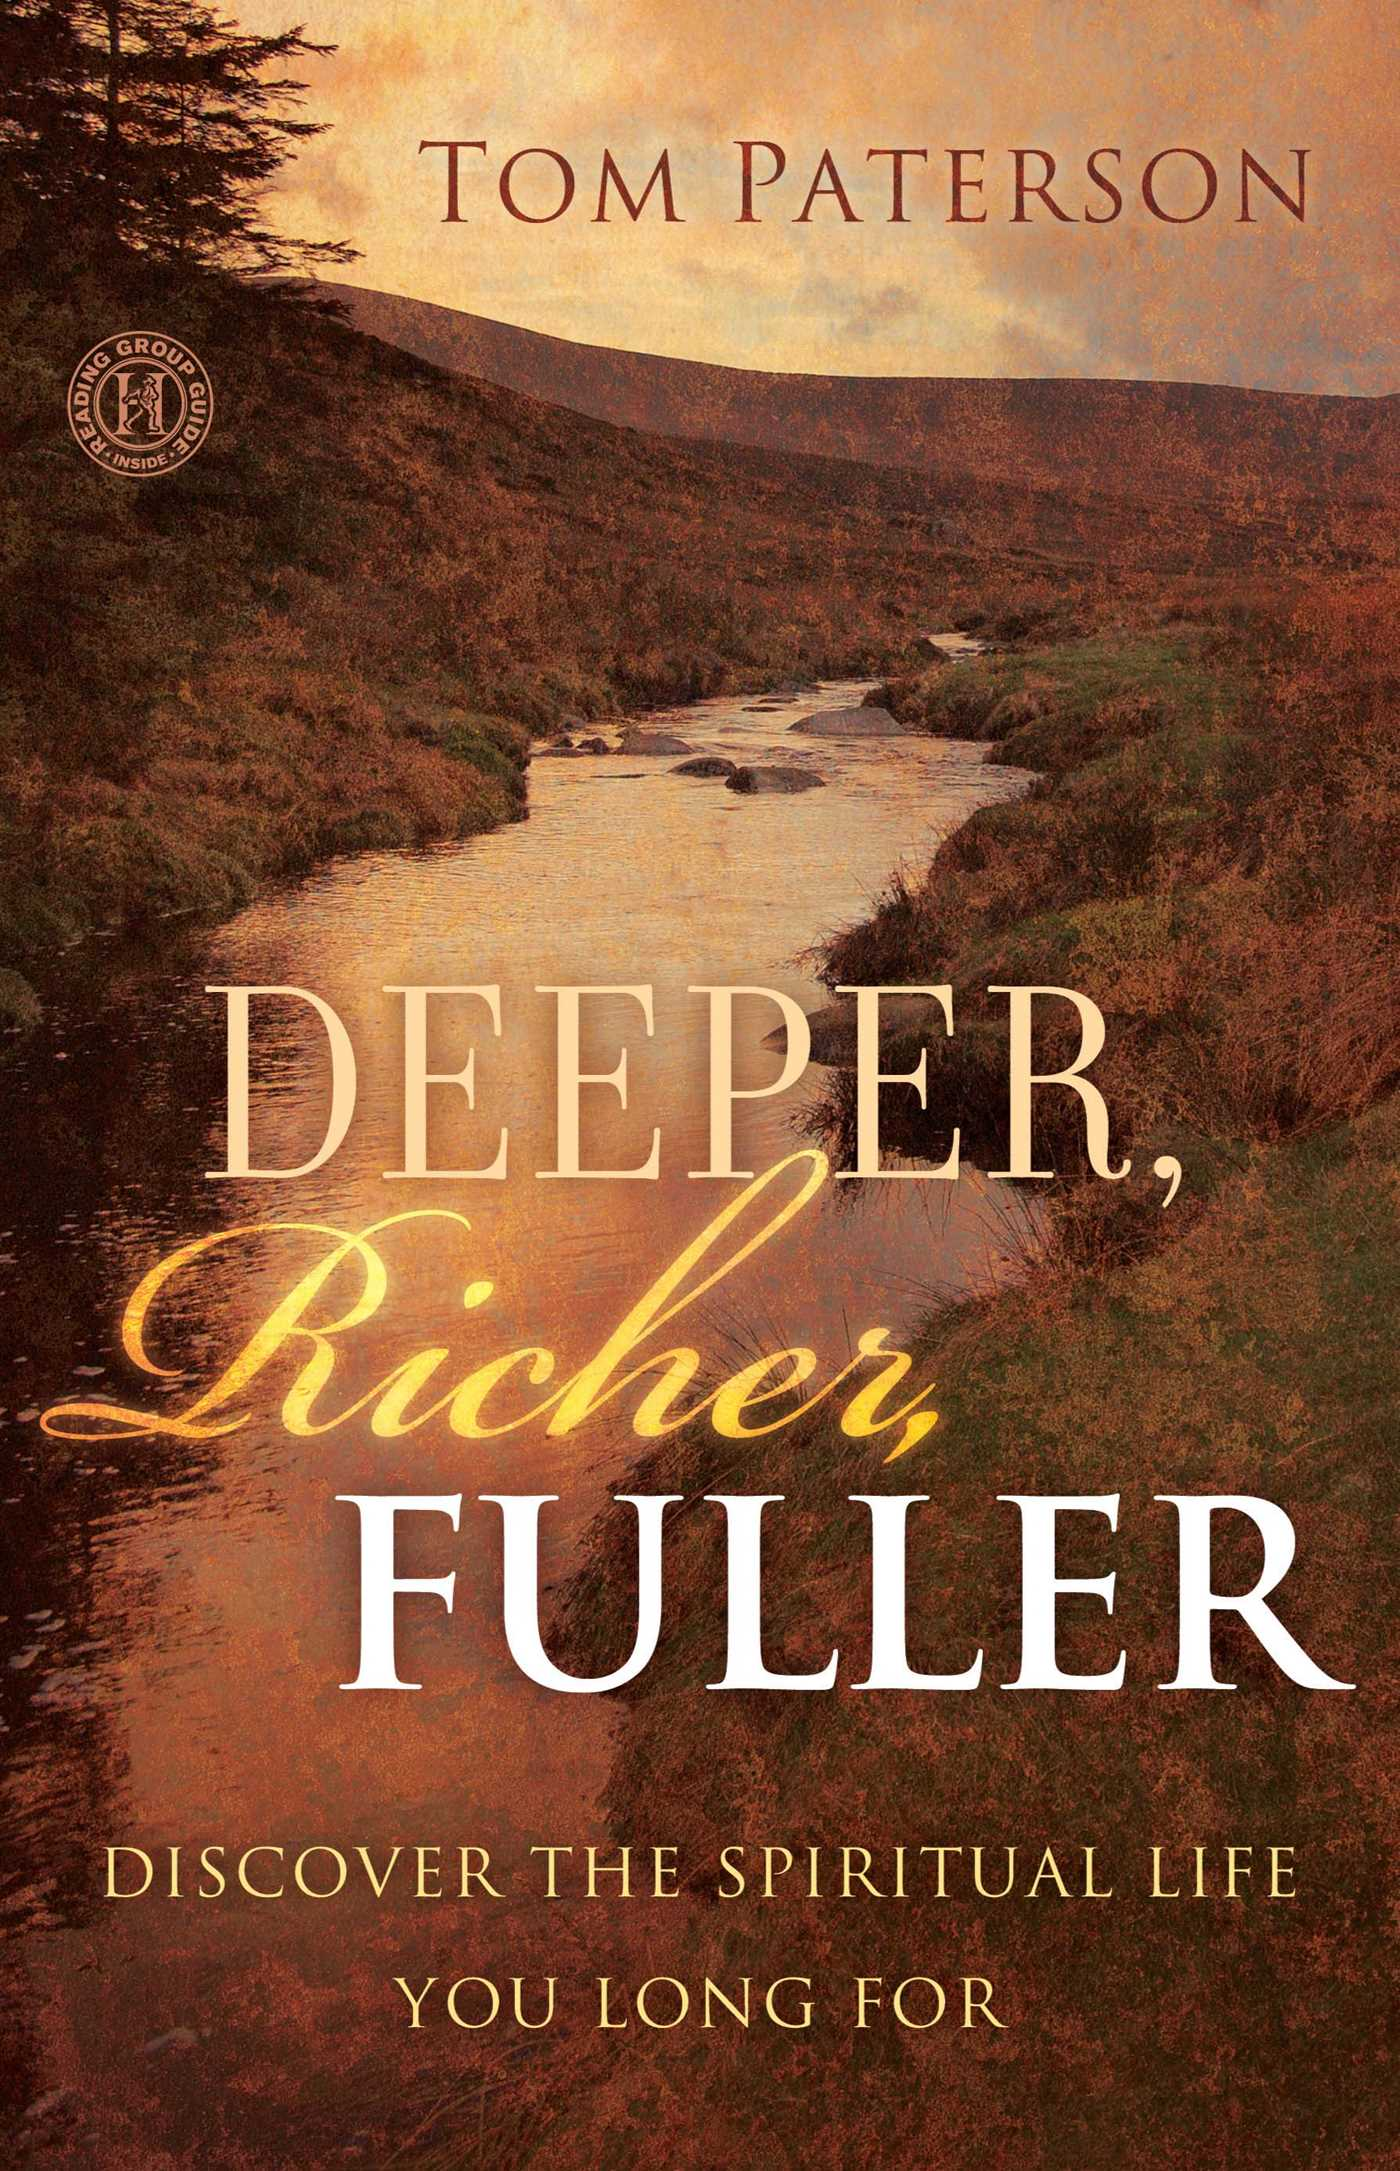 Deeper richer fuller 9781439135693 hr